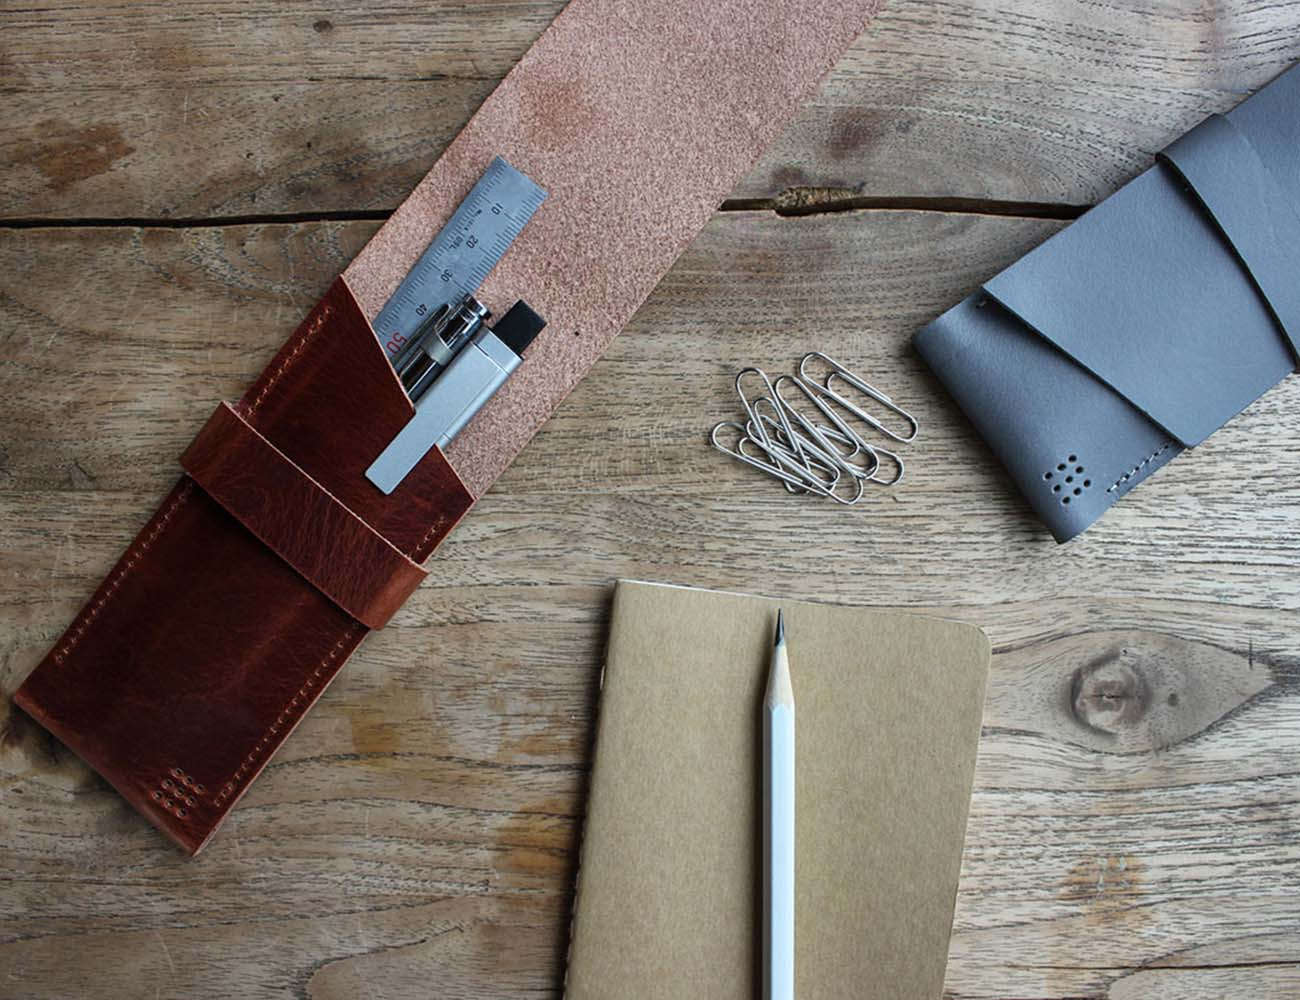 702 Handmade Black Leather Pen Case by Posh Projects